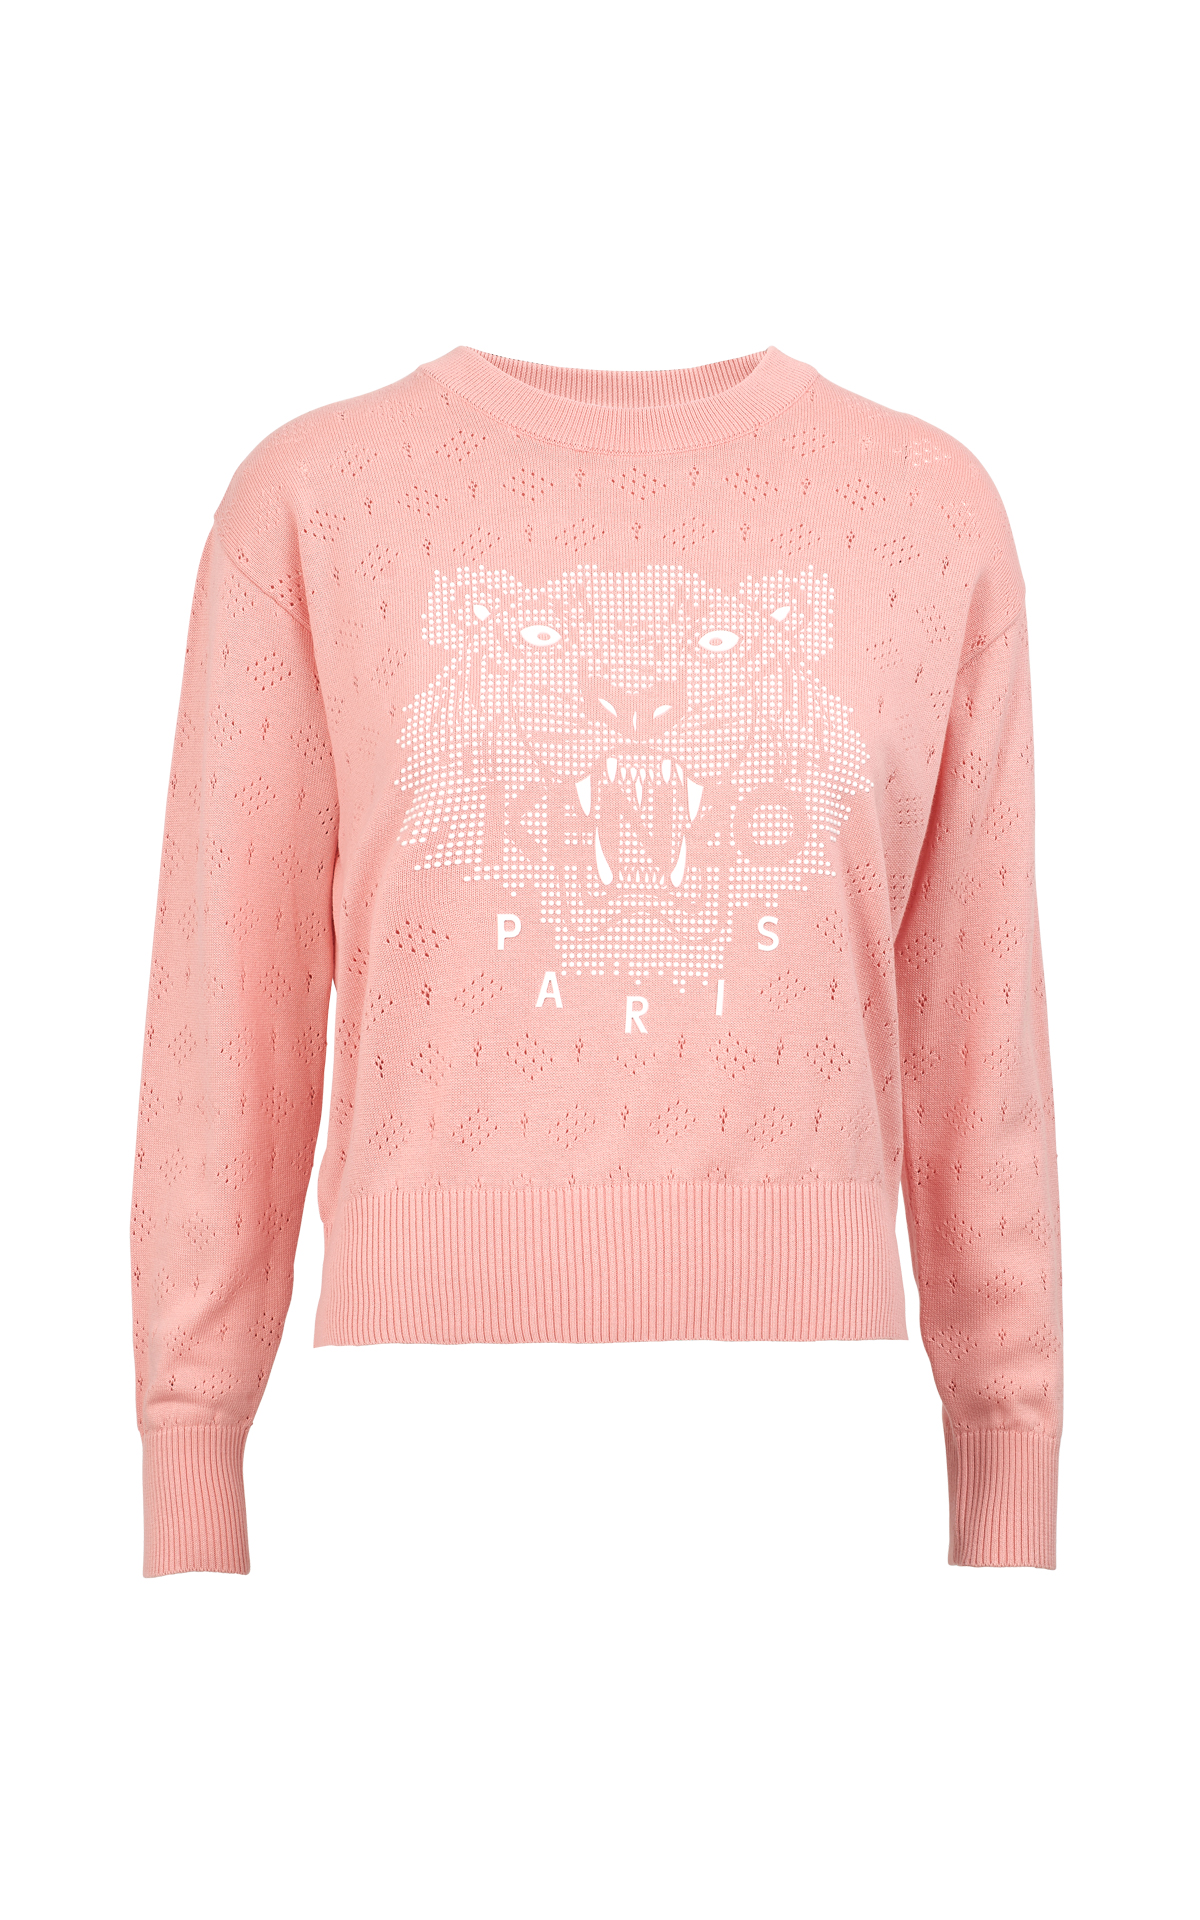 Pink sweater with logo Kenzo